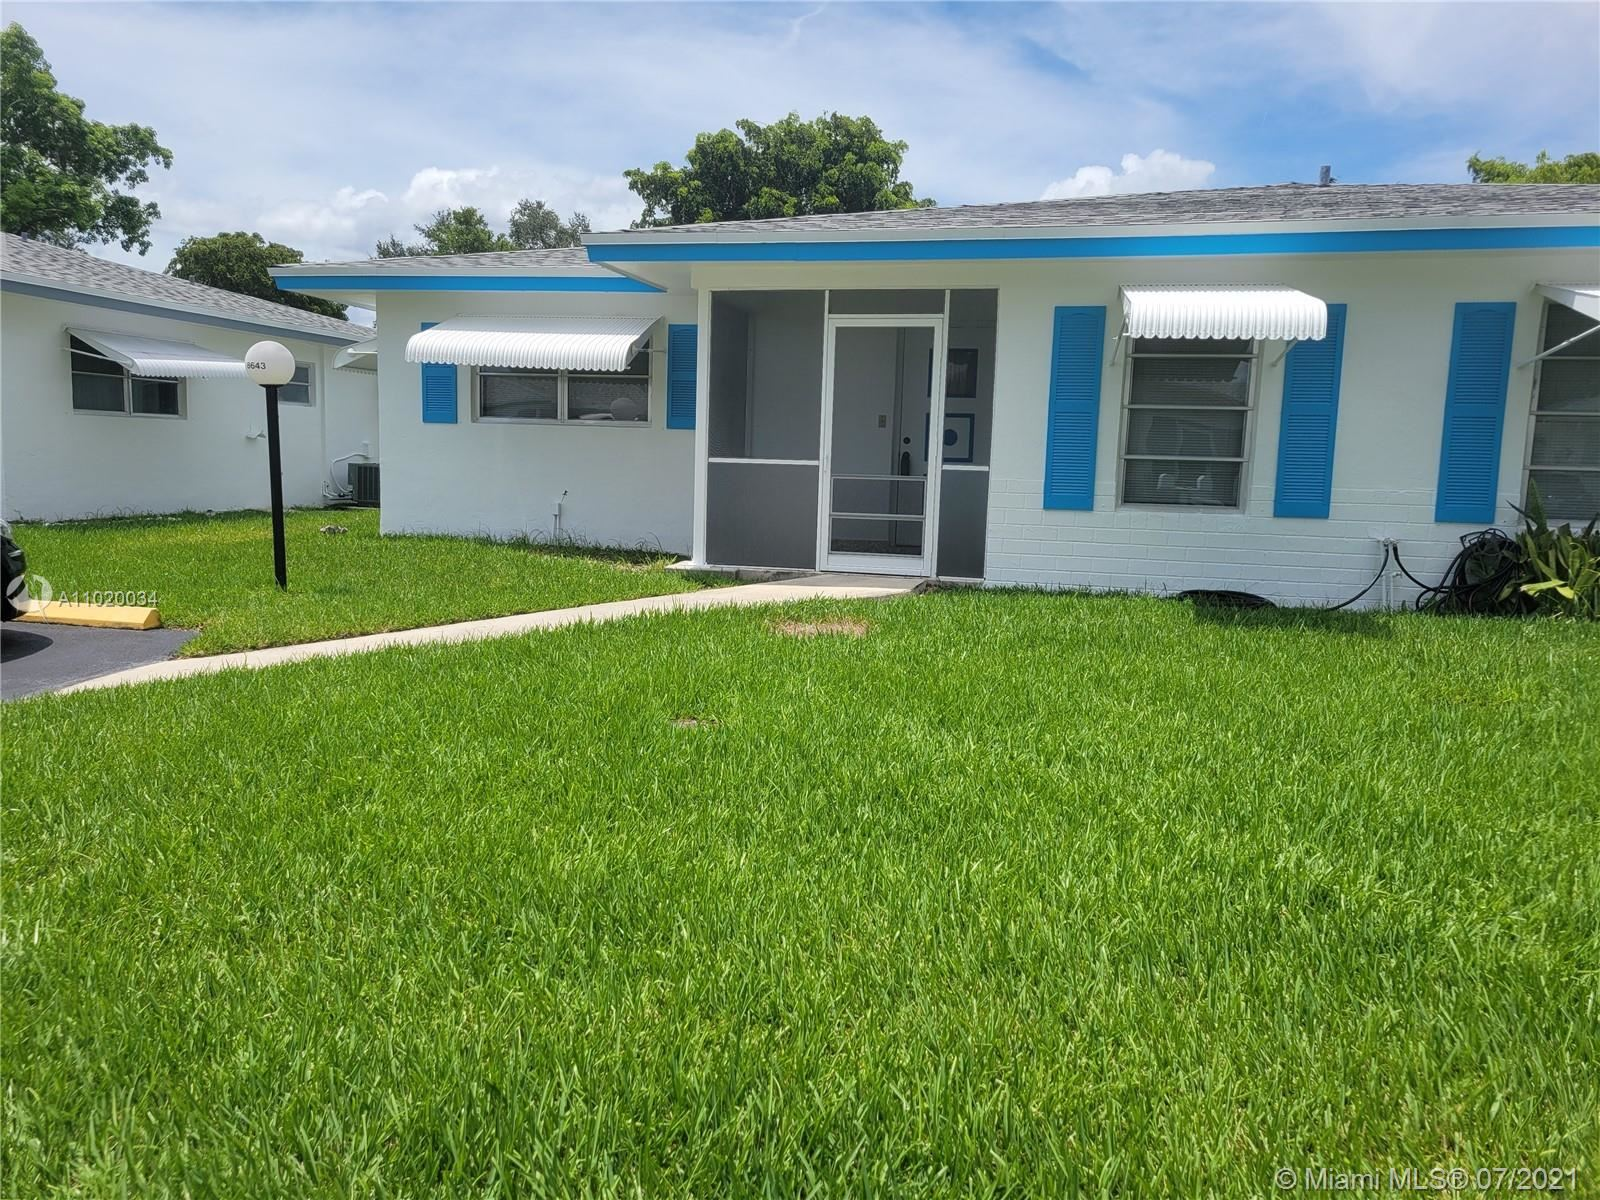 8643 NW 10th Pl #A135, Plantation, FL 33322 - #: A11020034